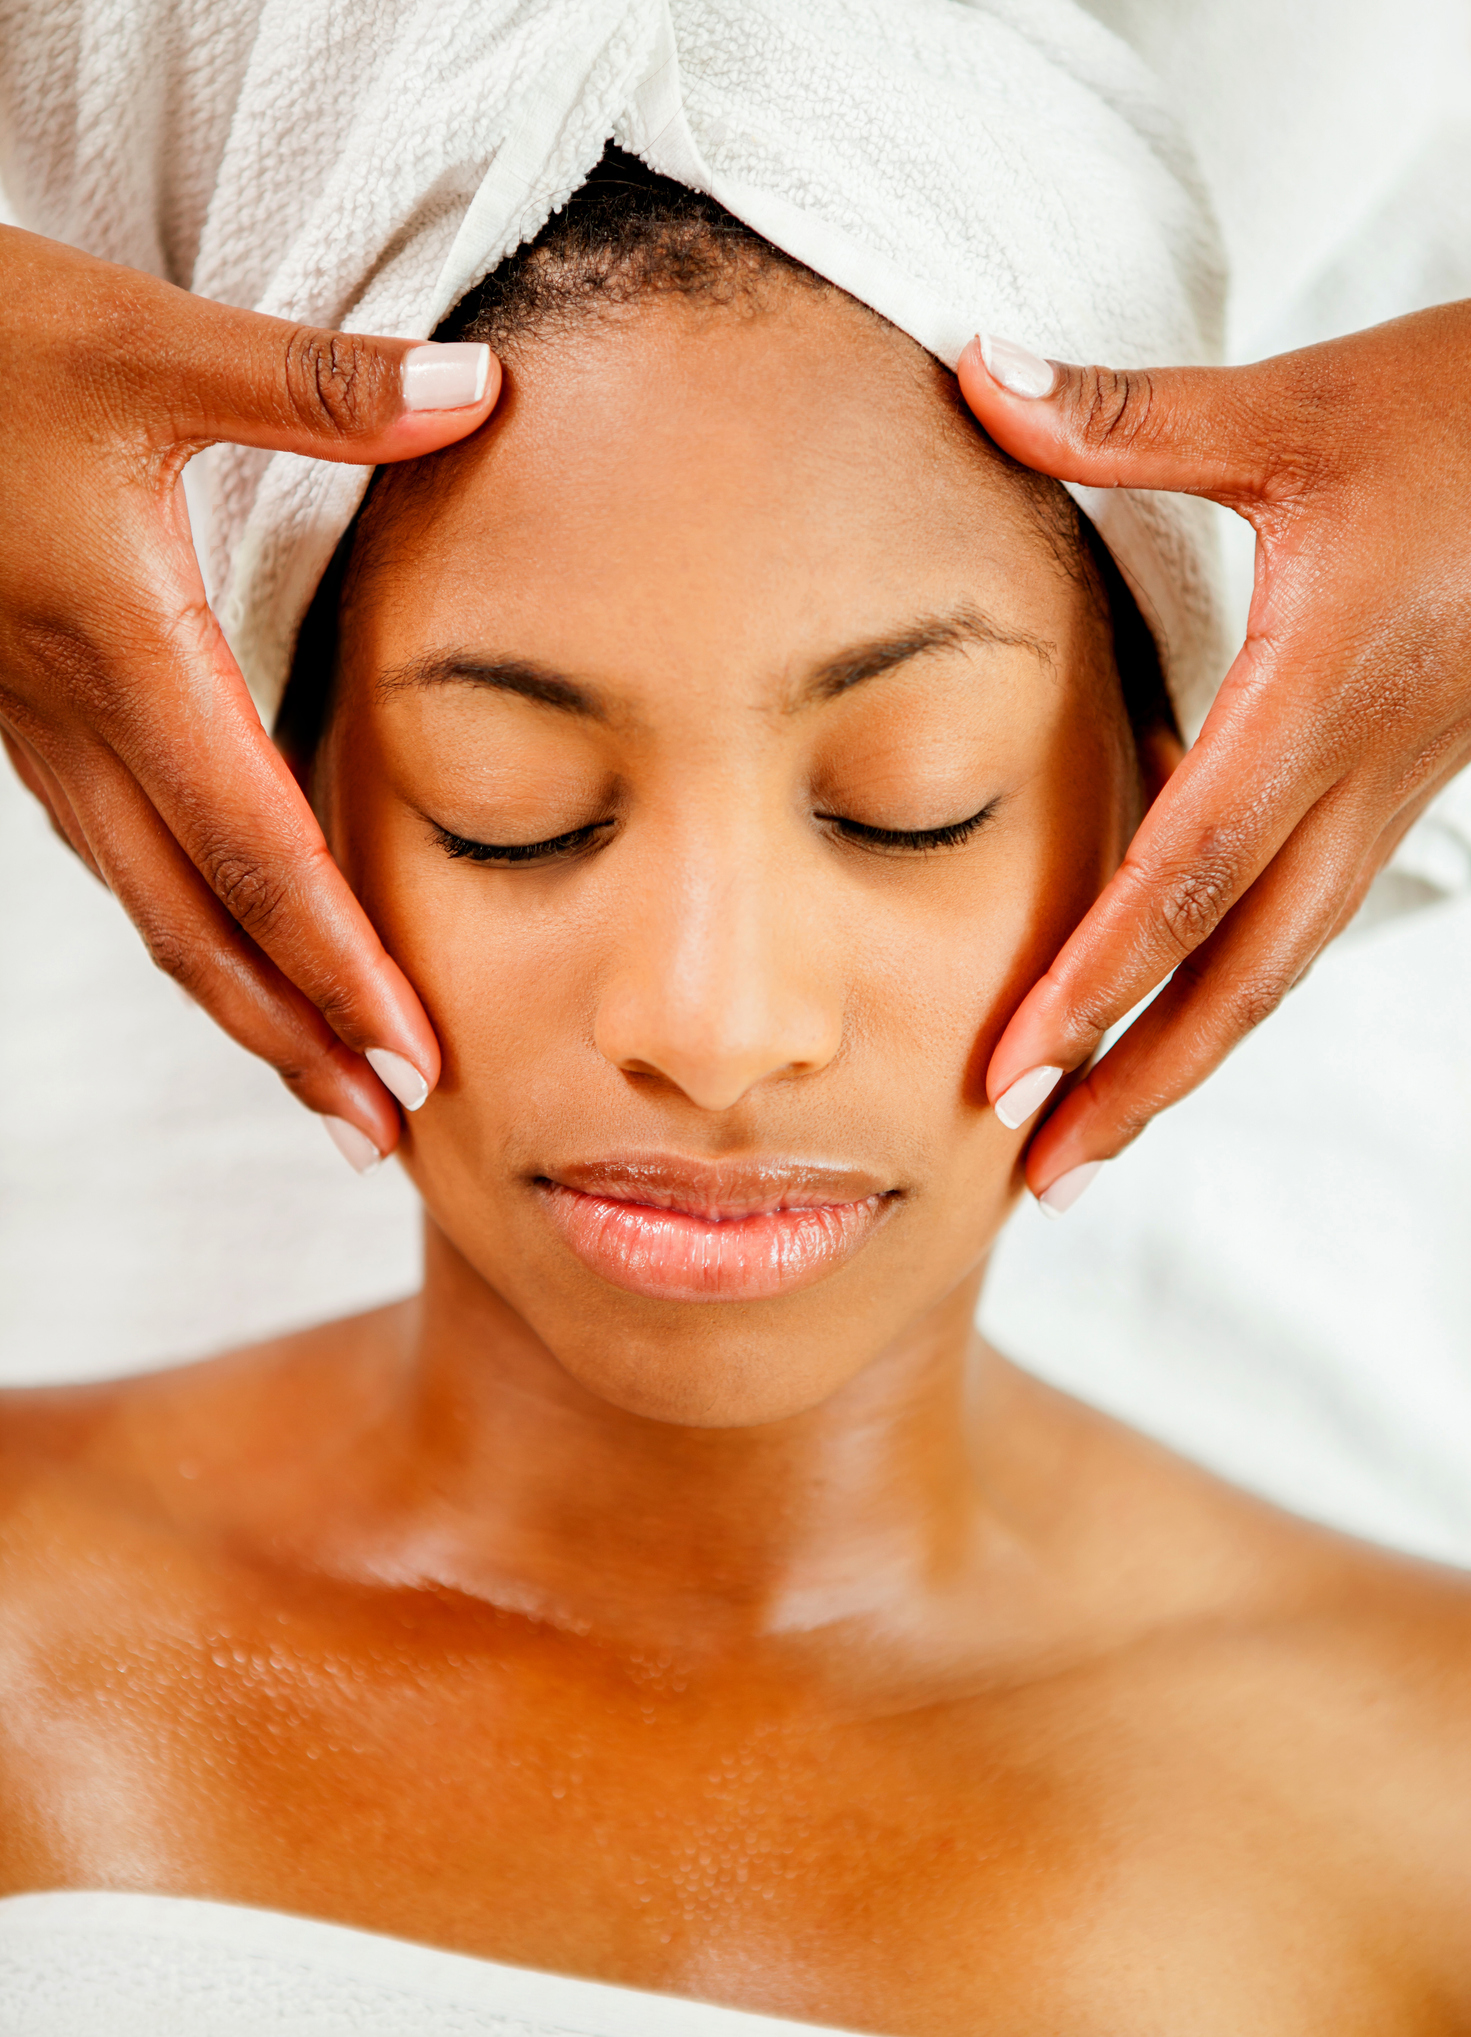 Beautiful black young woman getting a face massage looking very relaxed